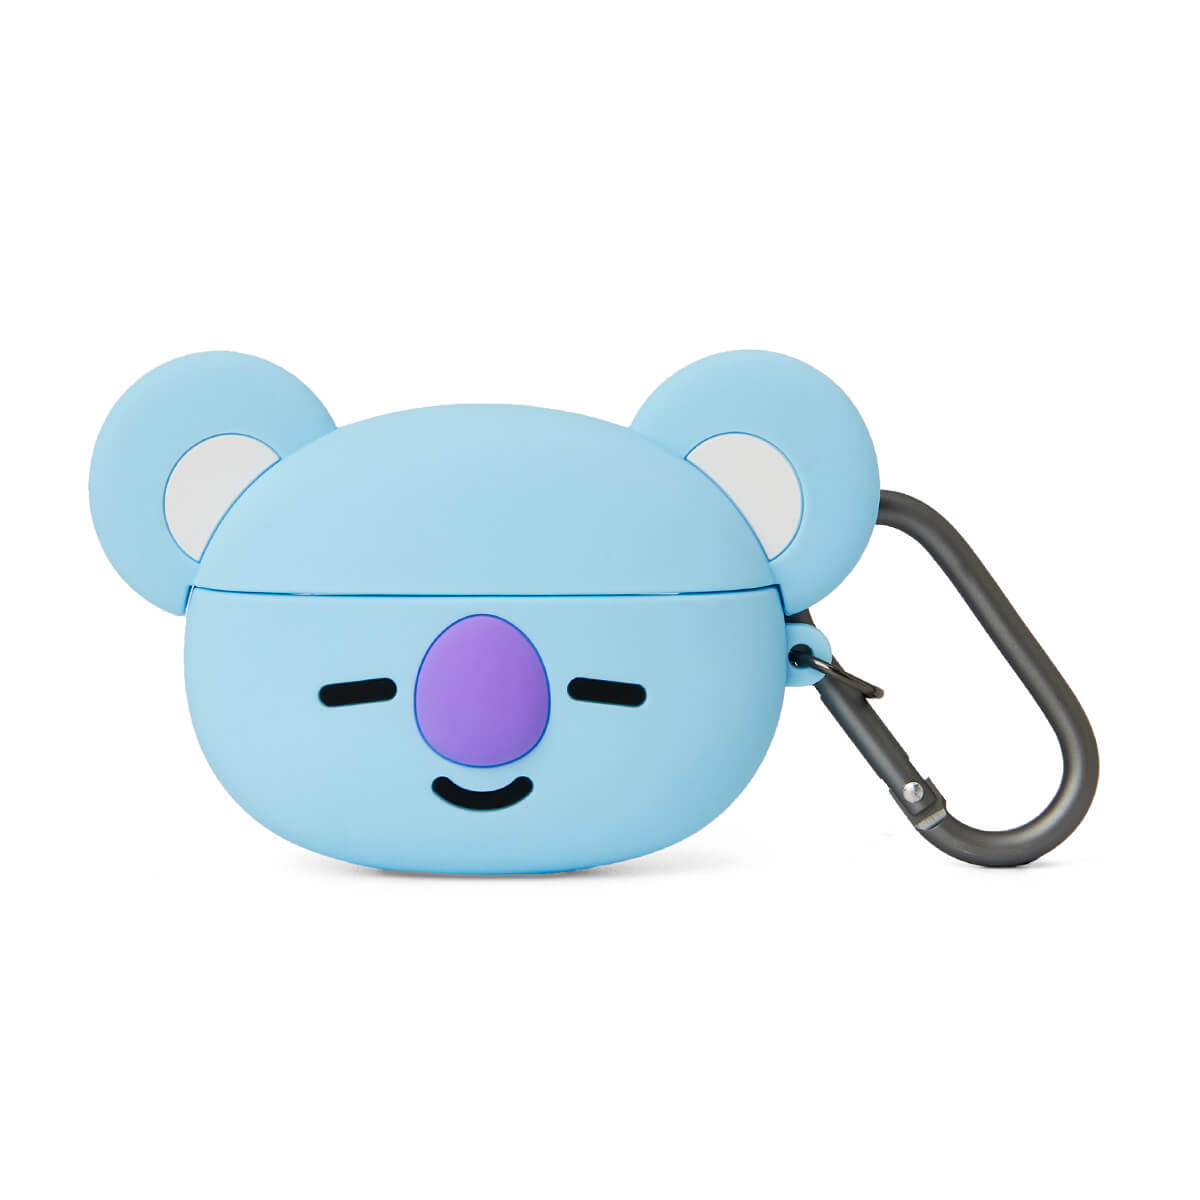 BT21 KOYA Basic AirPods Pro Case